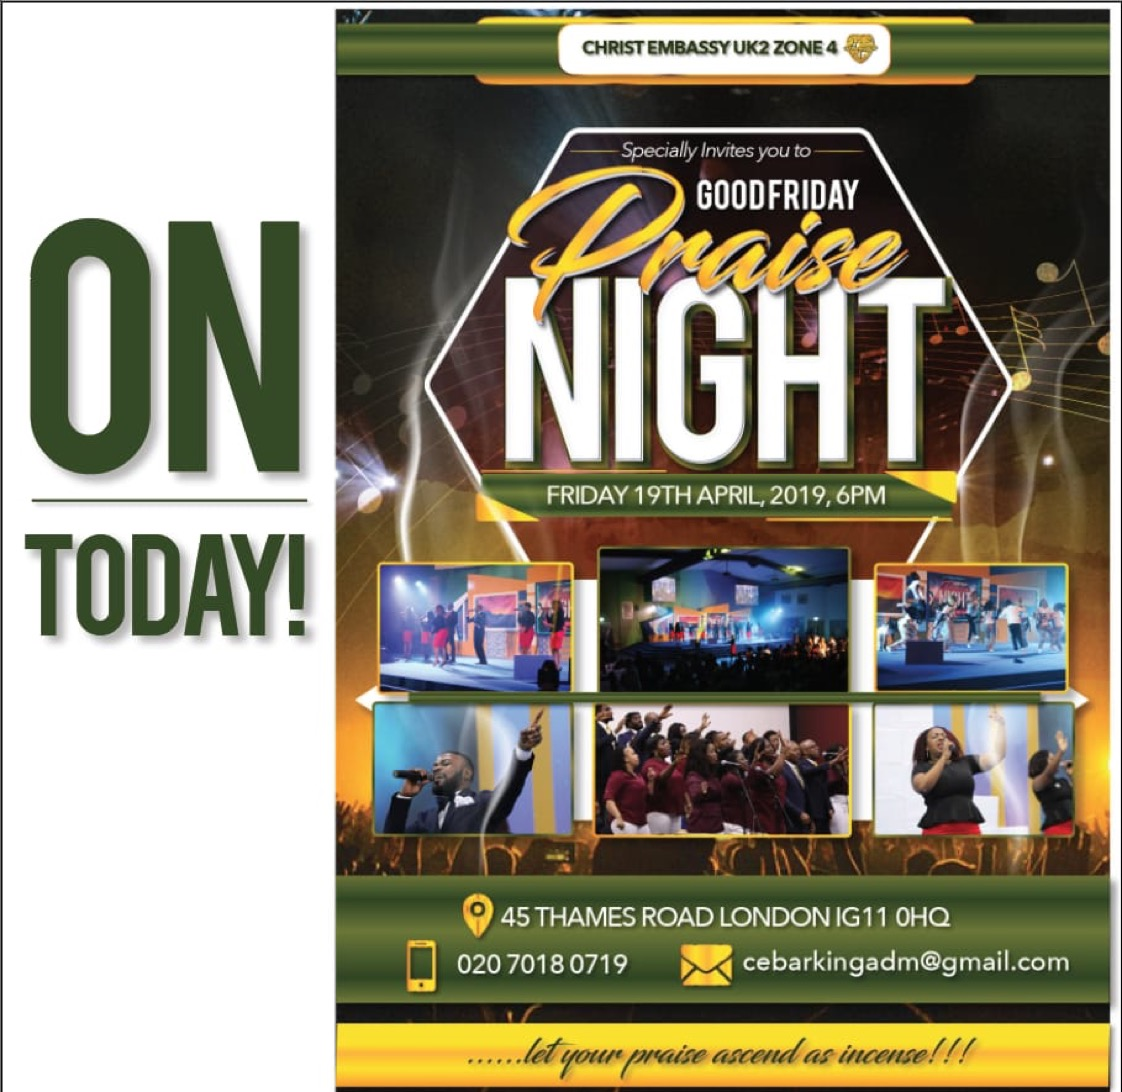 Come let's praise The Lord!